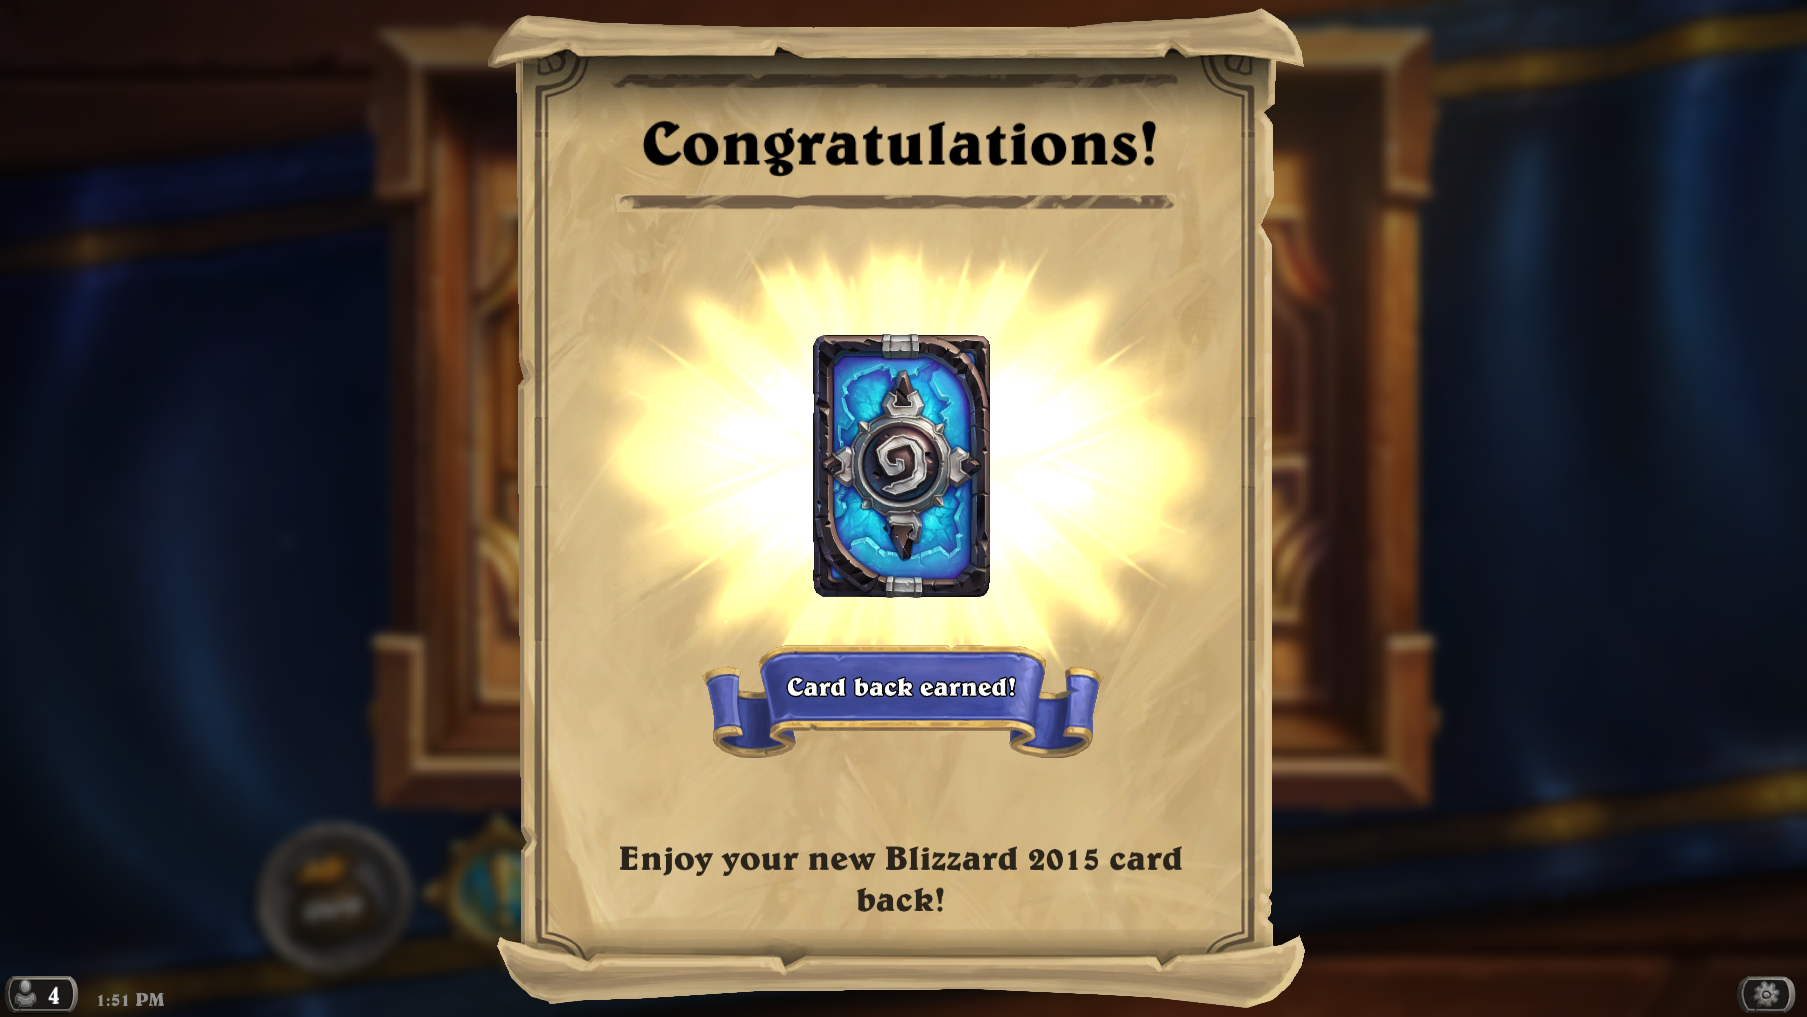 hearthstone screenshot 11-10-15 13.51.57.png